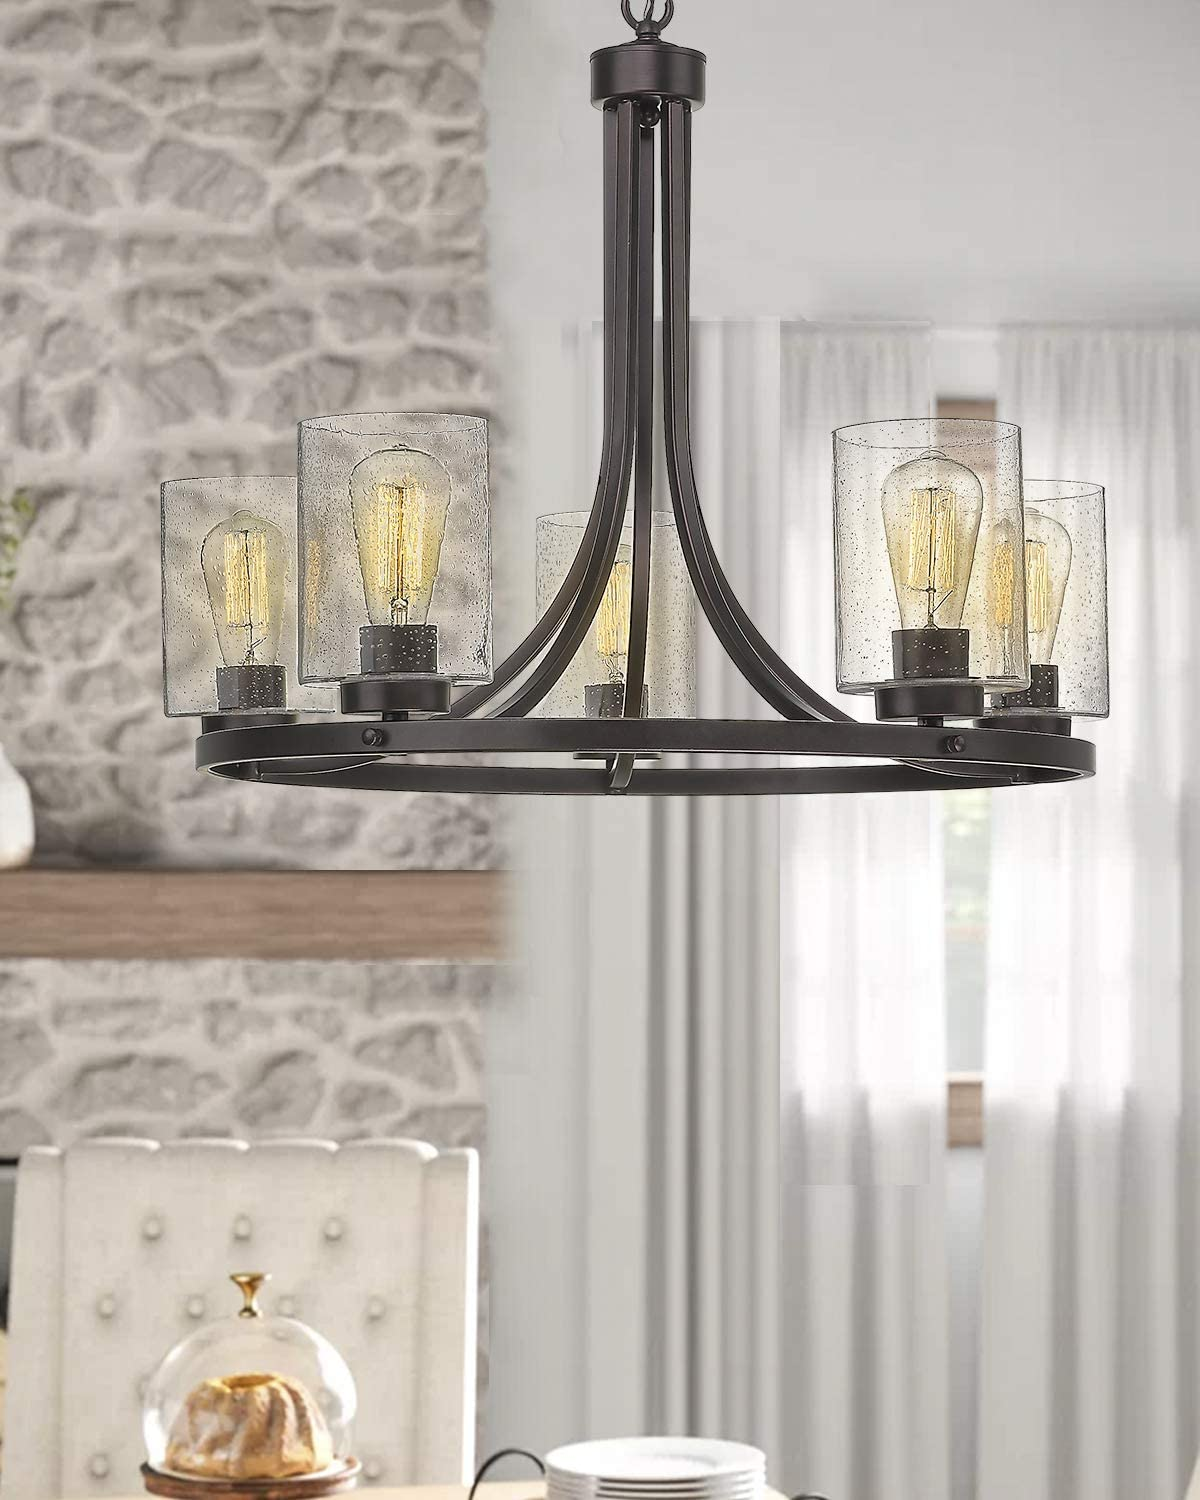 5-Light Wagon Wheel Chandelier, Beionxii 26 Farmhouse Contemporary Large Pendant Chandelier Lighting Fixture Oil Rubbed Bronze with Clear Seeded Glass